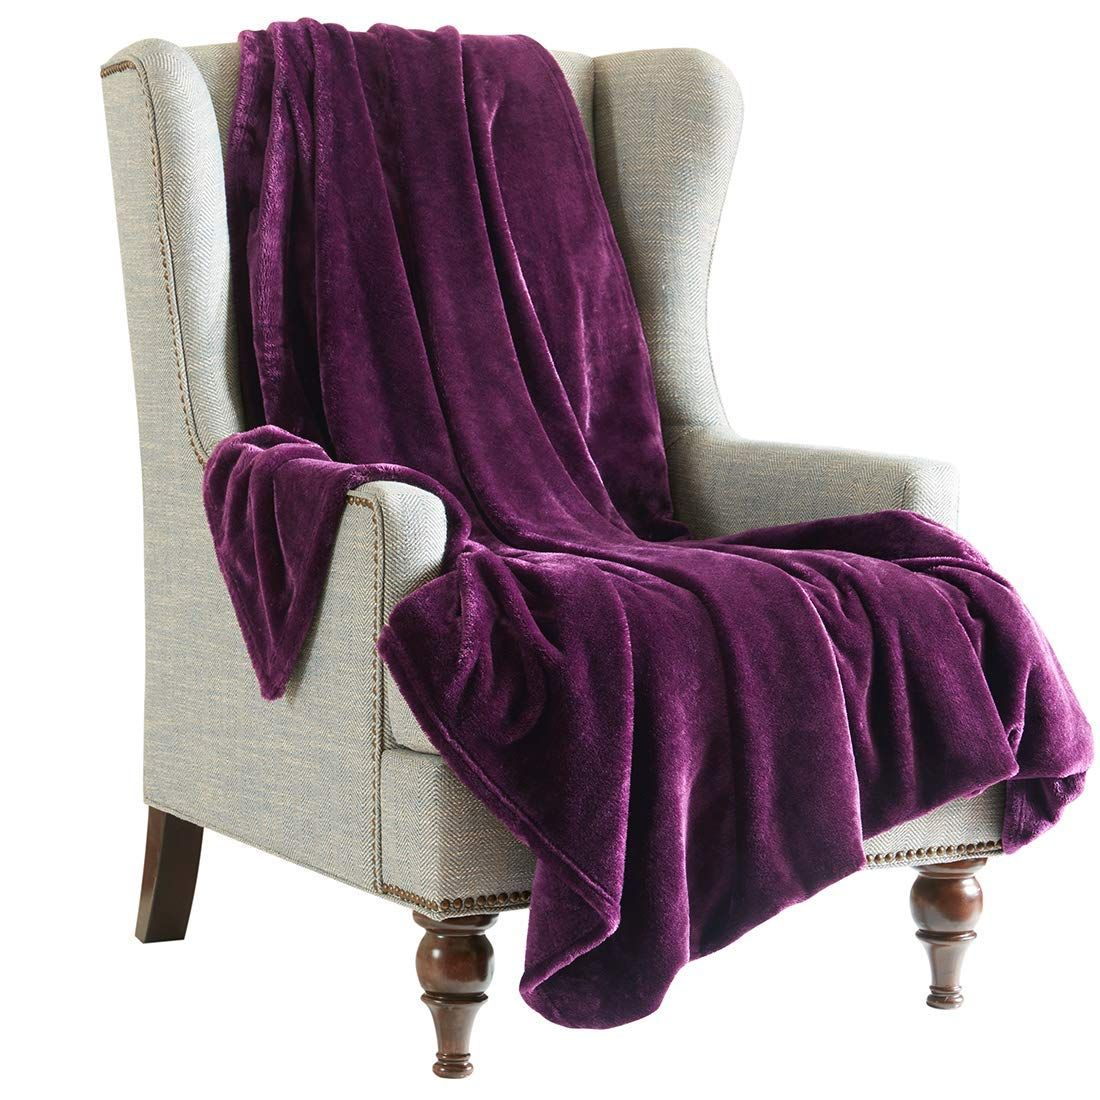 Purple Flannel Throw Blanket For Sofa Size 200x240 Cm